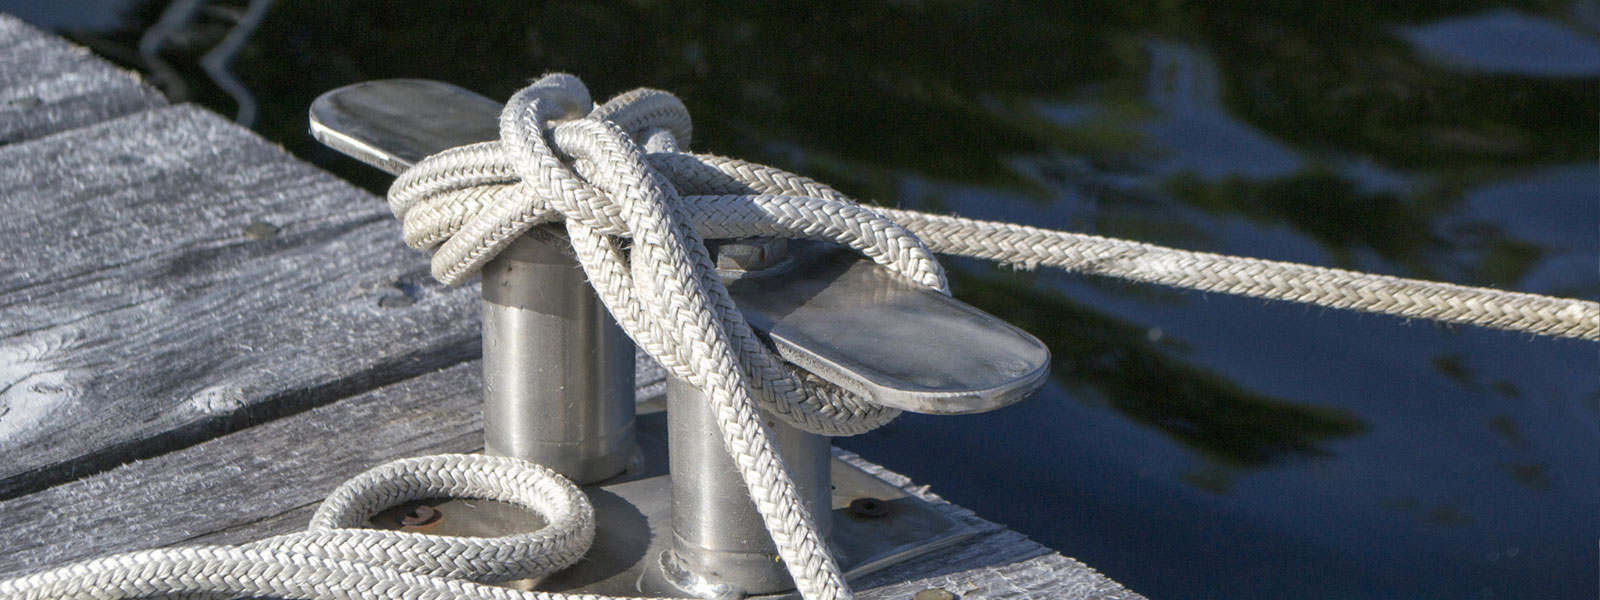 General Use Ropes